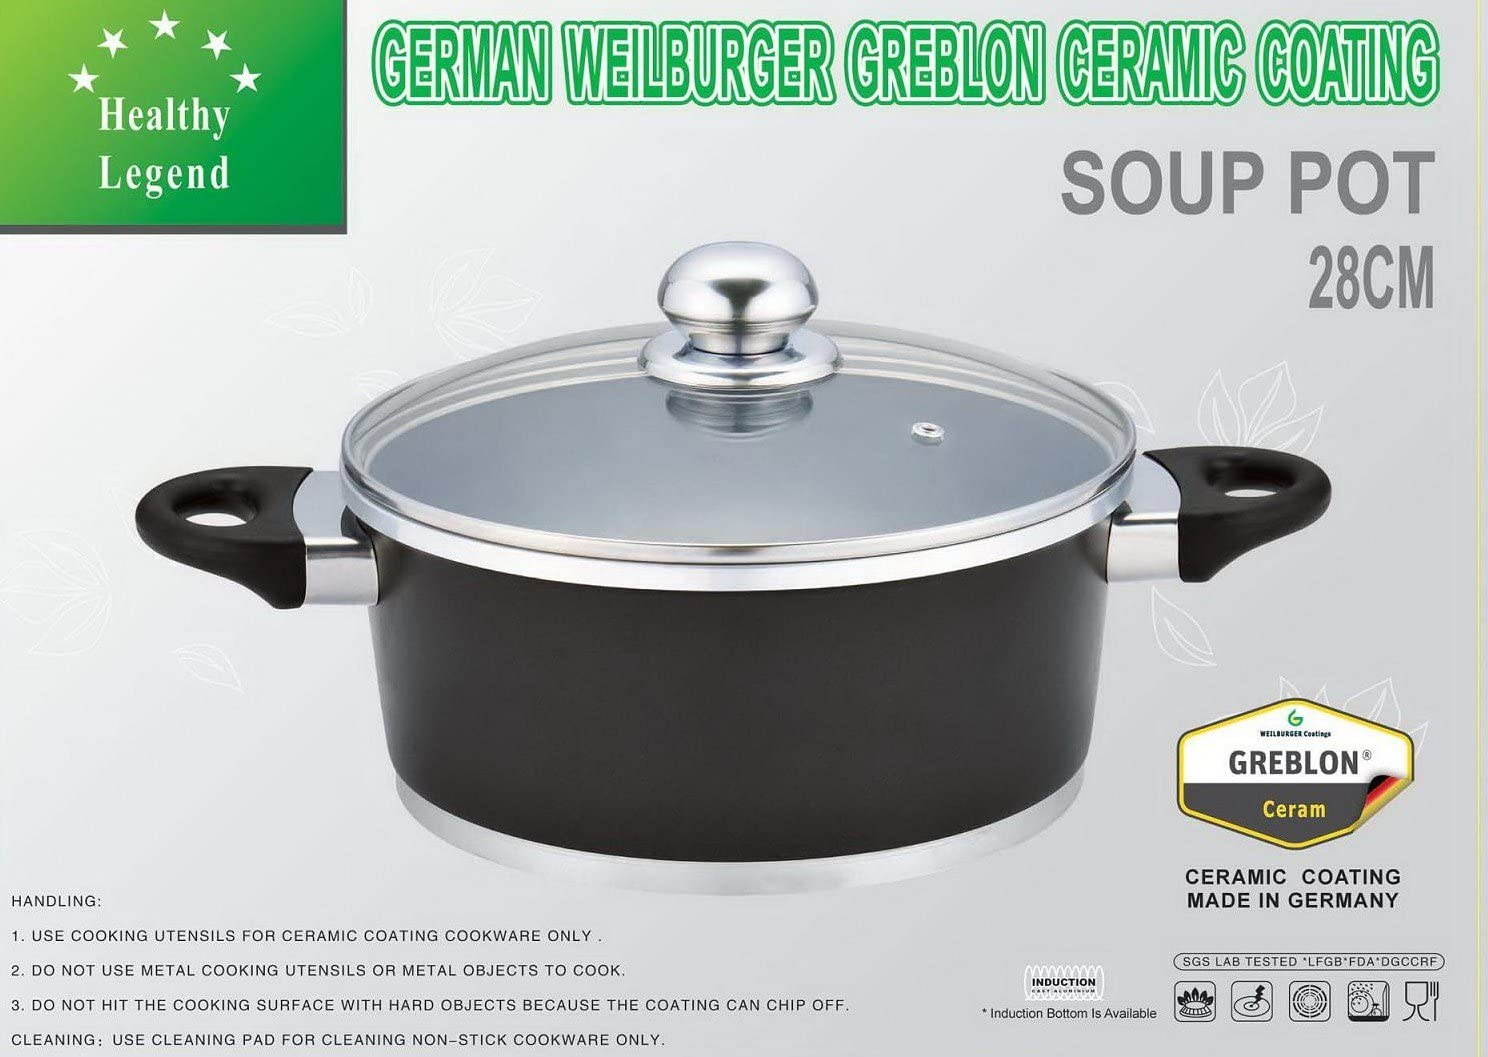 B009WIHWG6 7.1 Quart Stock Pot (soup pot) with Non-stick German Weilburger Ceramic Coating by Healthy Legend - Induction Ready, ECO Friendly Non-toxic Cookware 71chCLYDxML